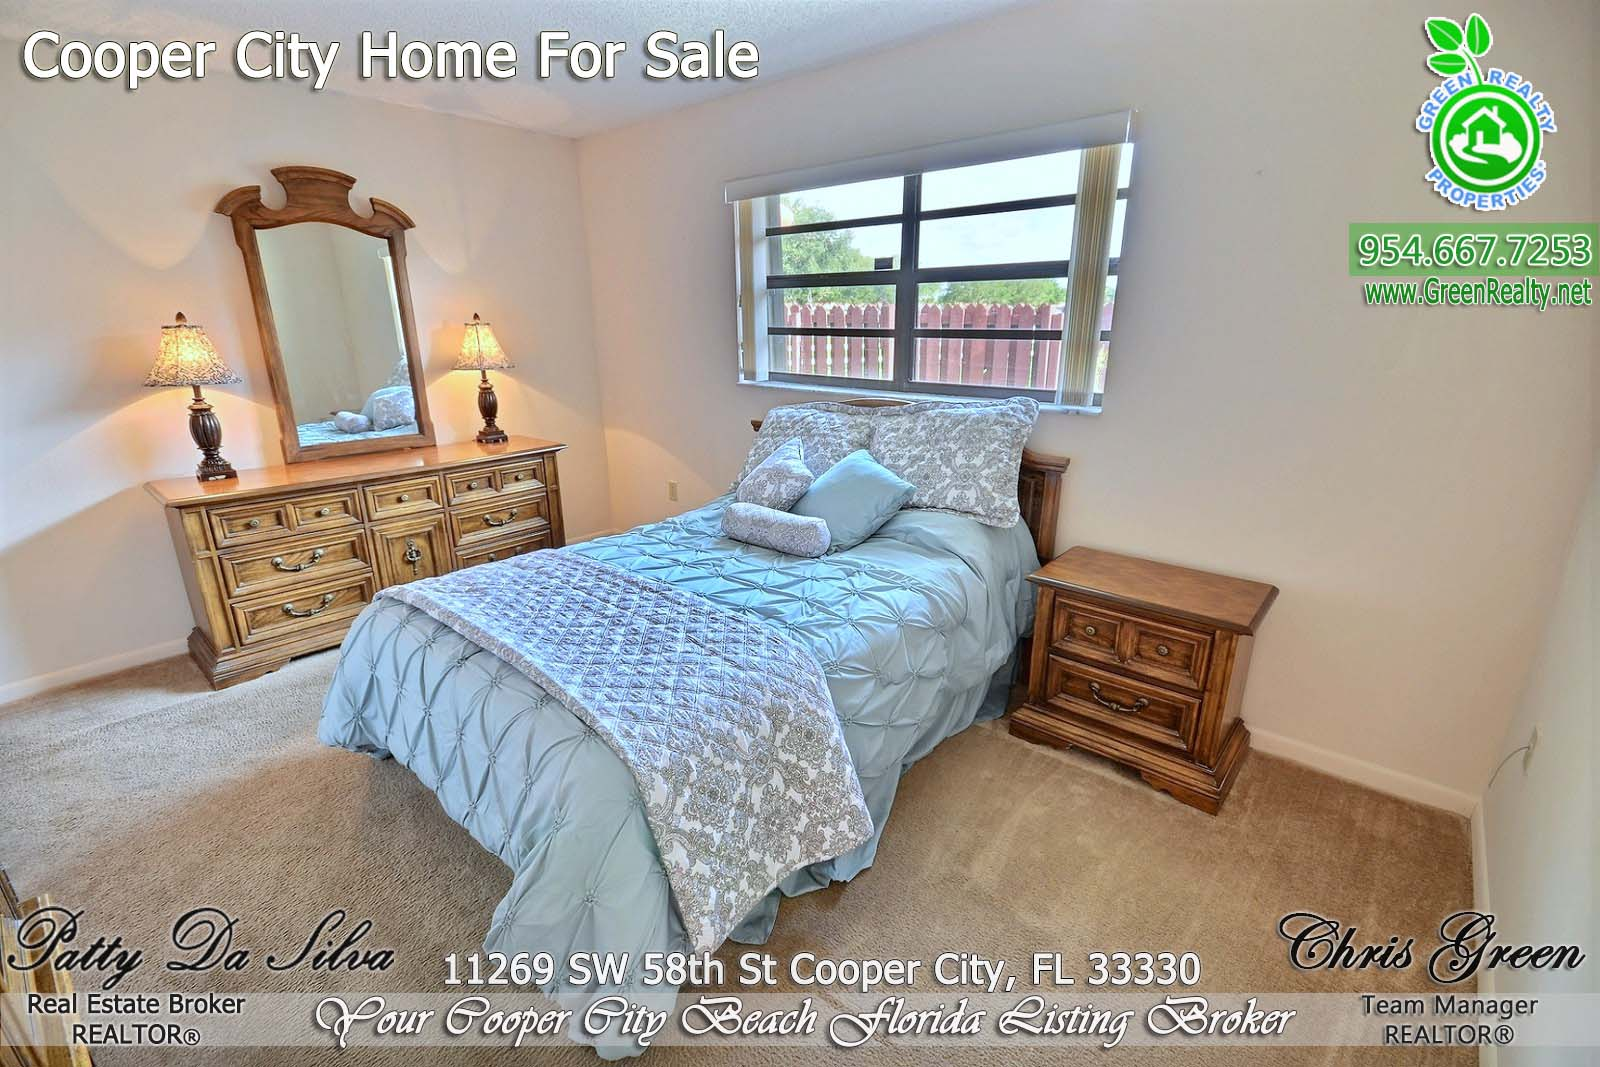 13 Cooper City Real Estate - Villas (20)